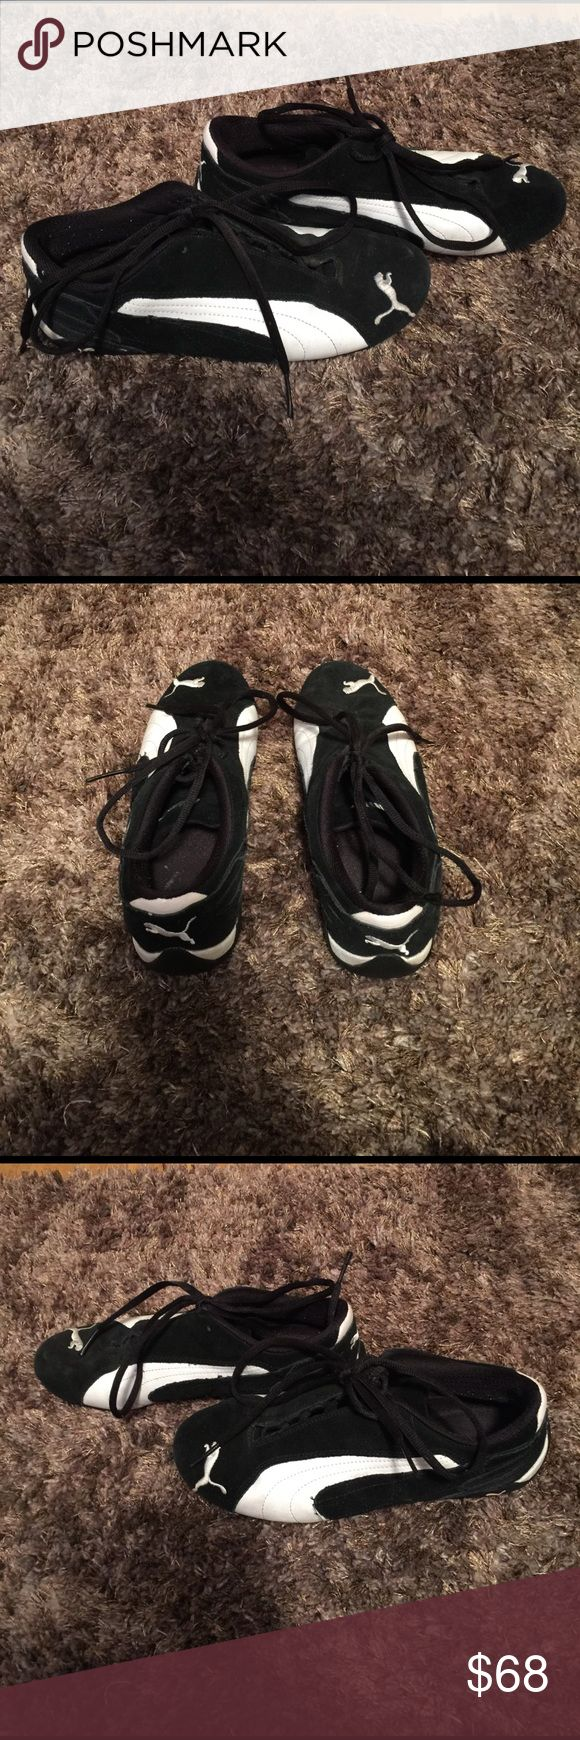 LOWEST PRICE. Puma shoes Size 8 Puma Shoes Sneakers